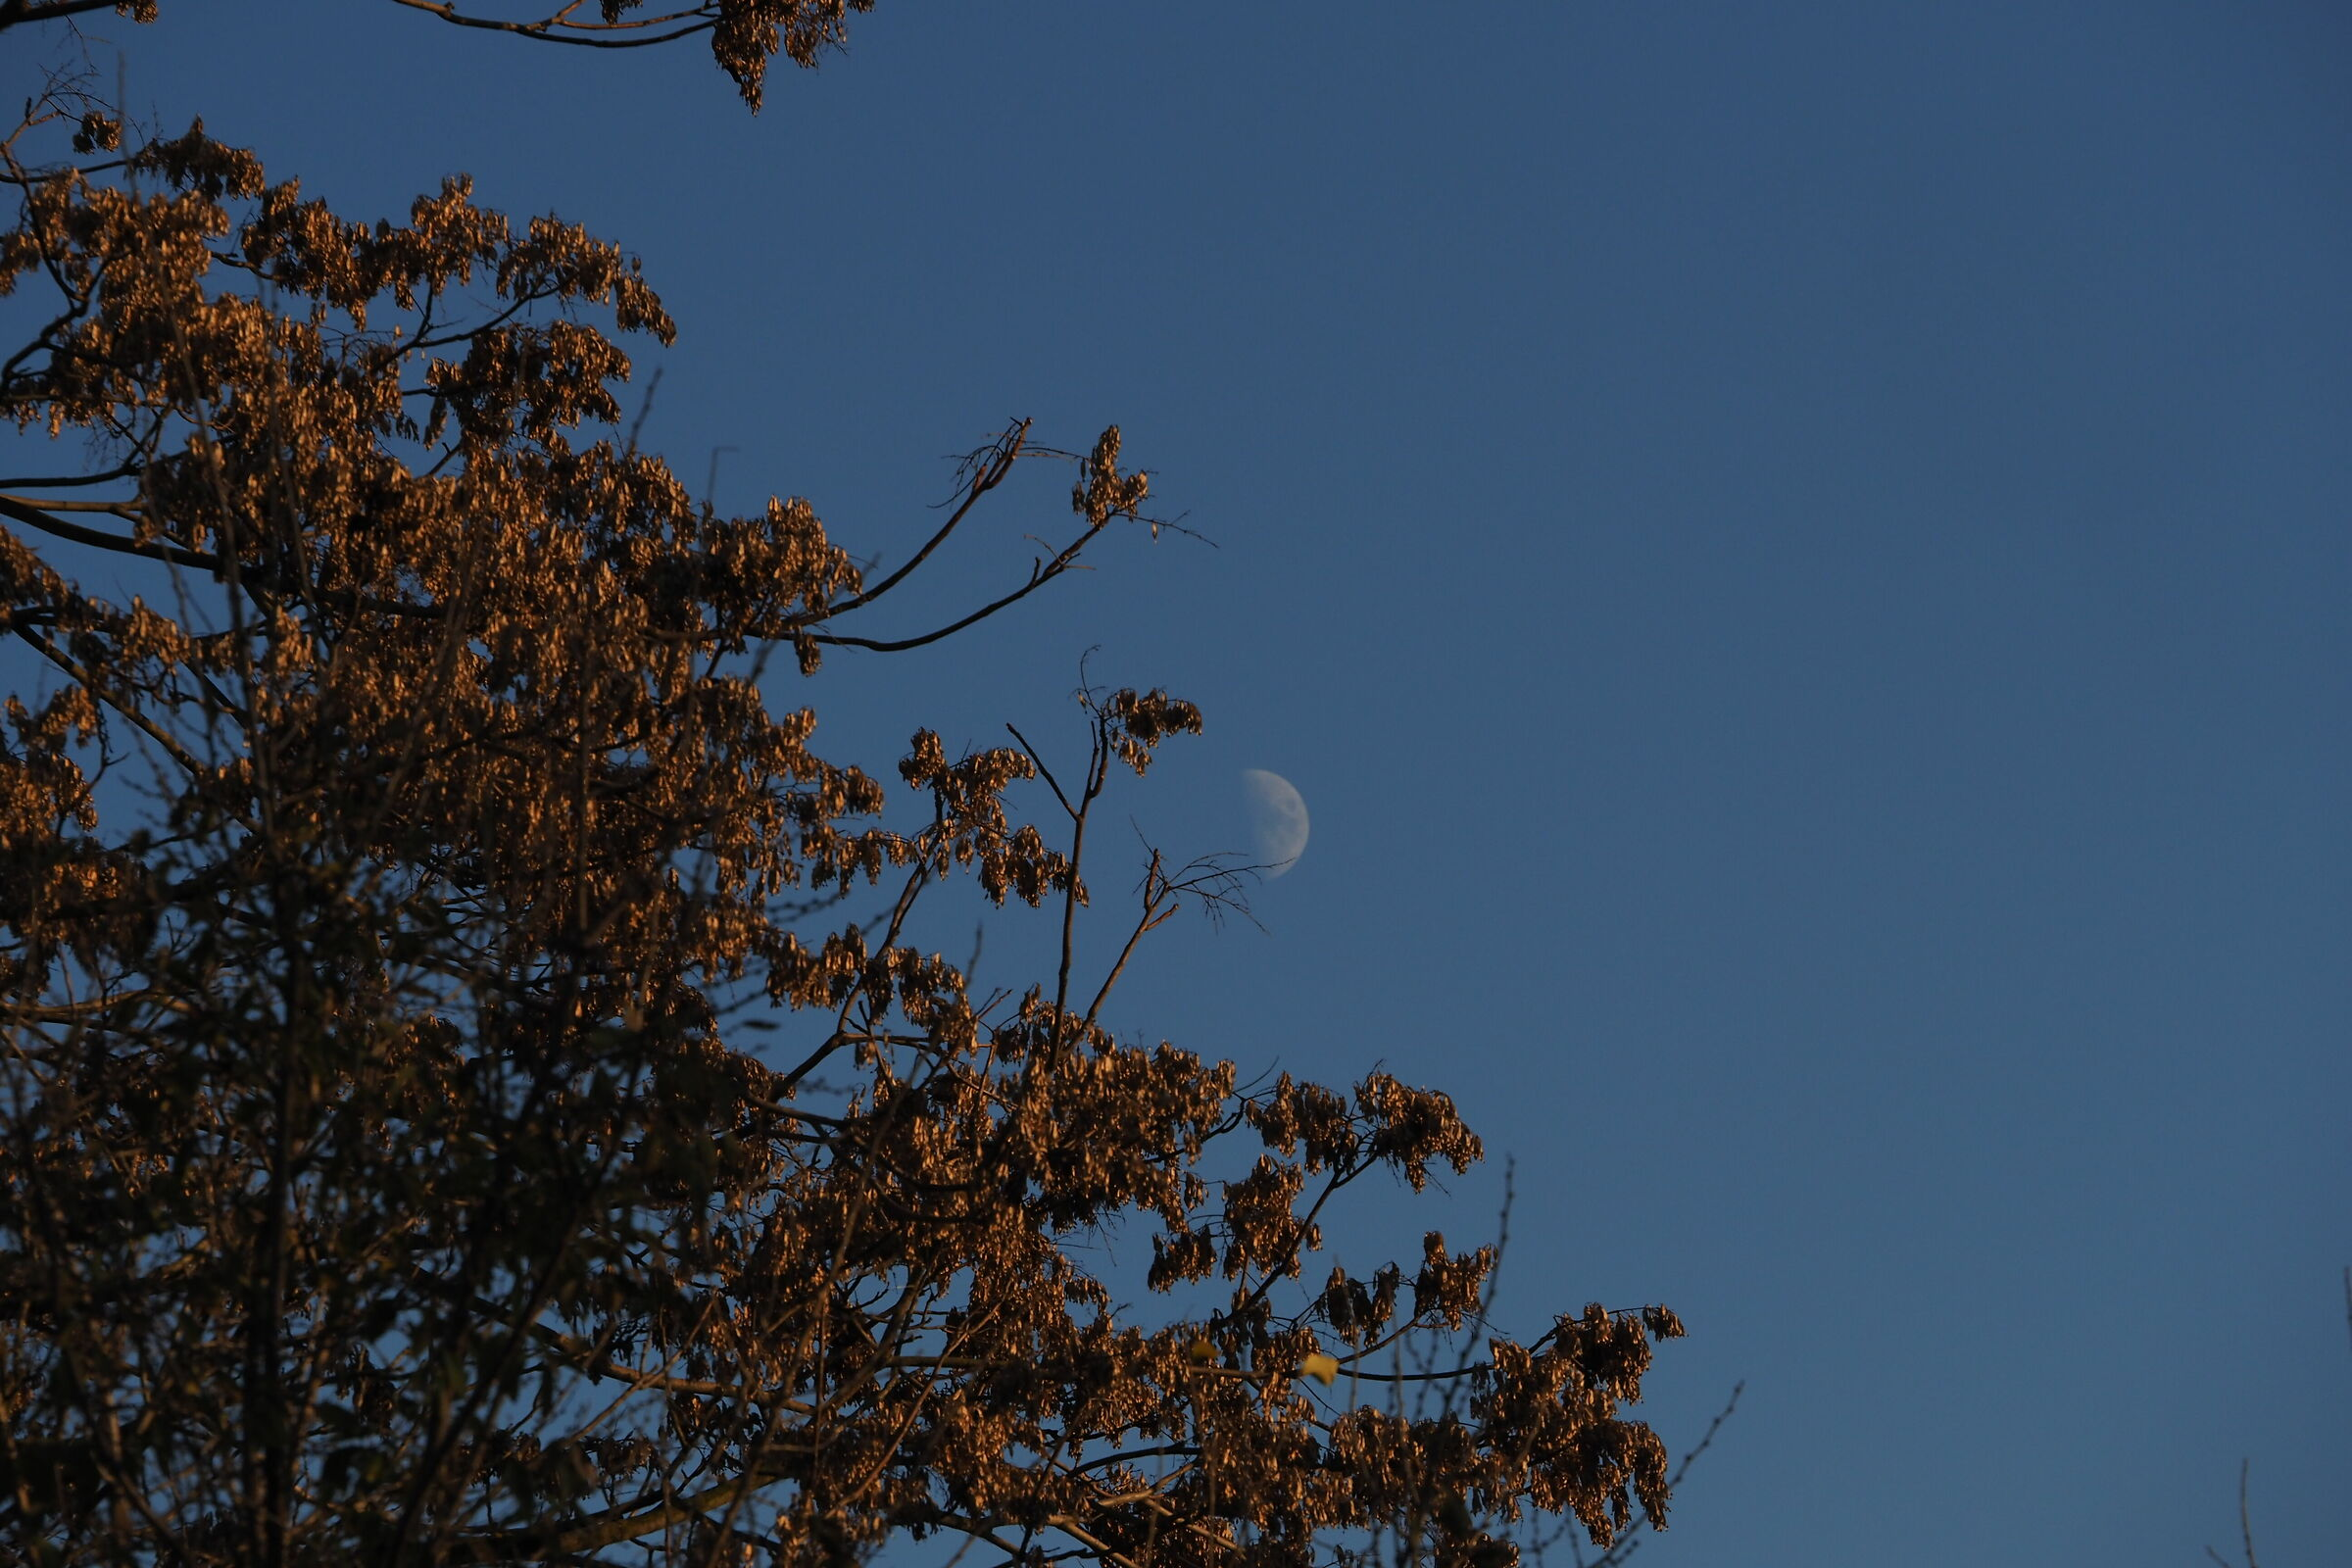 and the moon peeps......